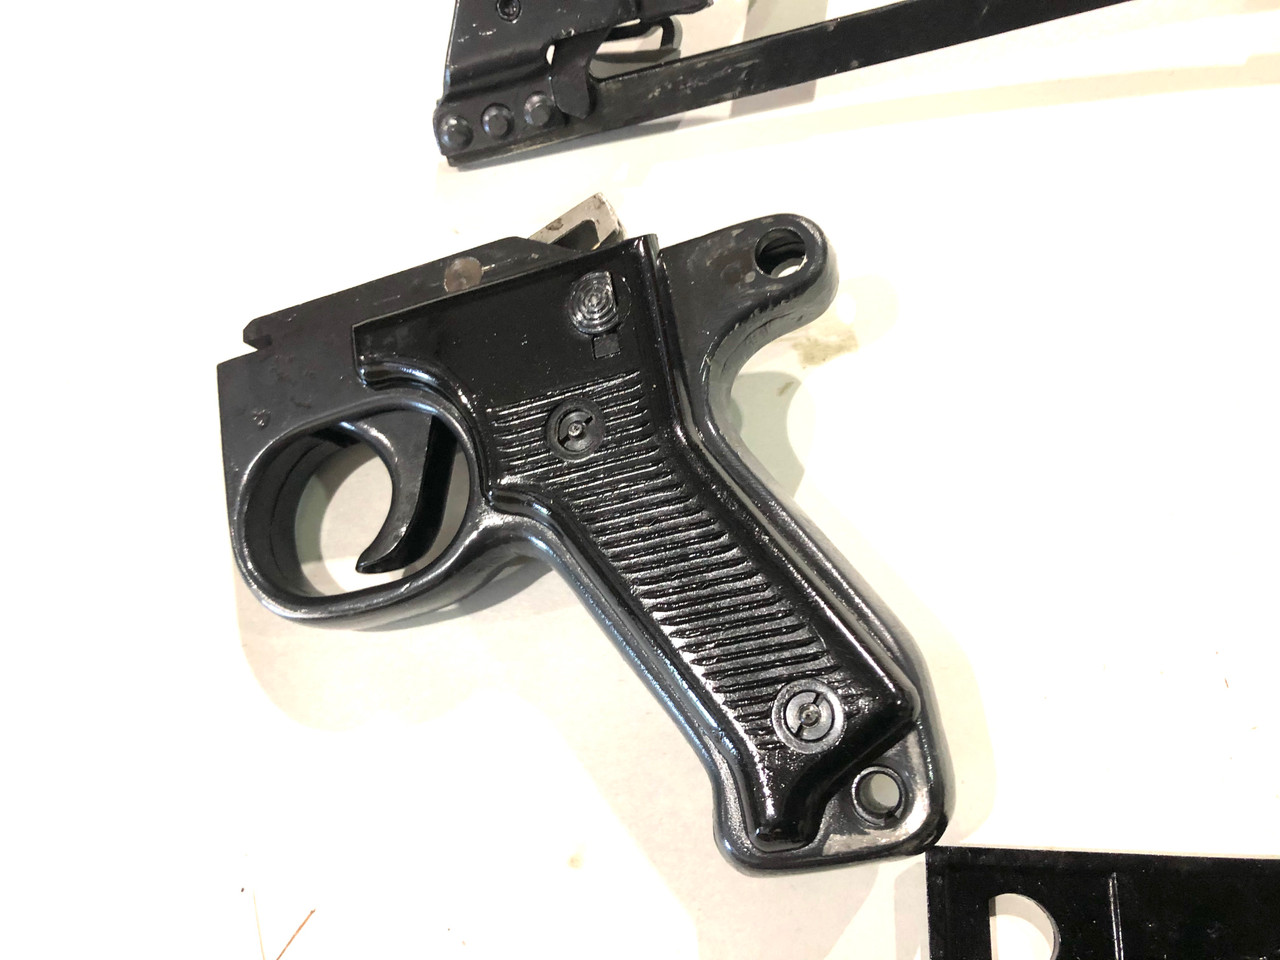 Lot: MG42 grips, cocking handle, and M53 trigger pack